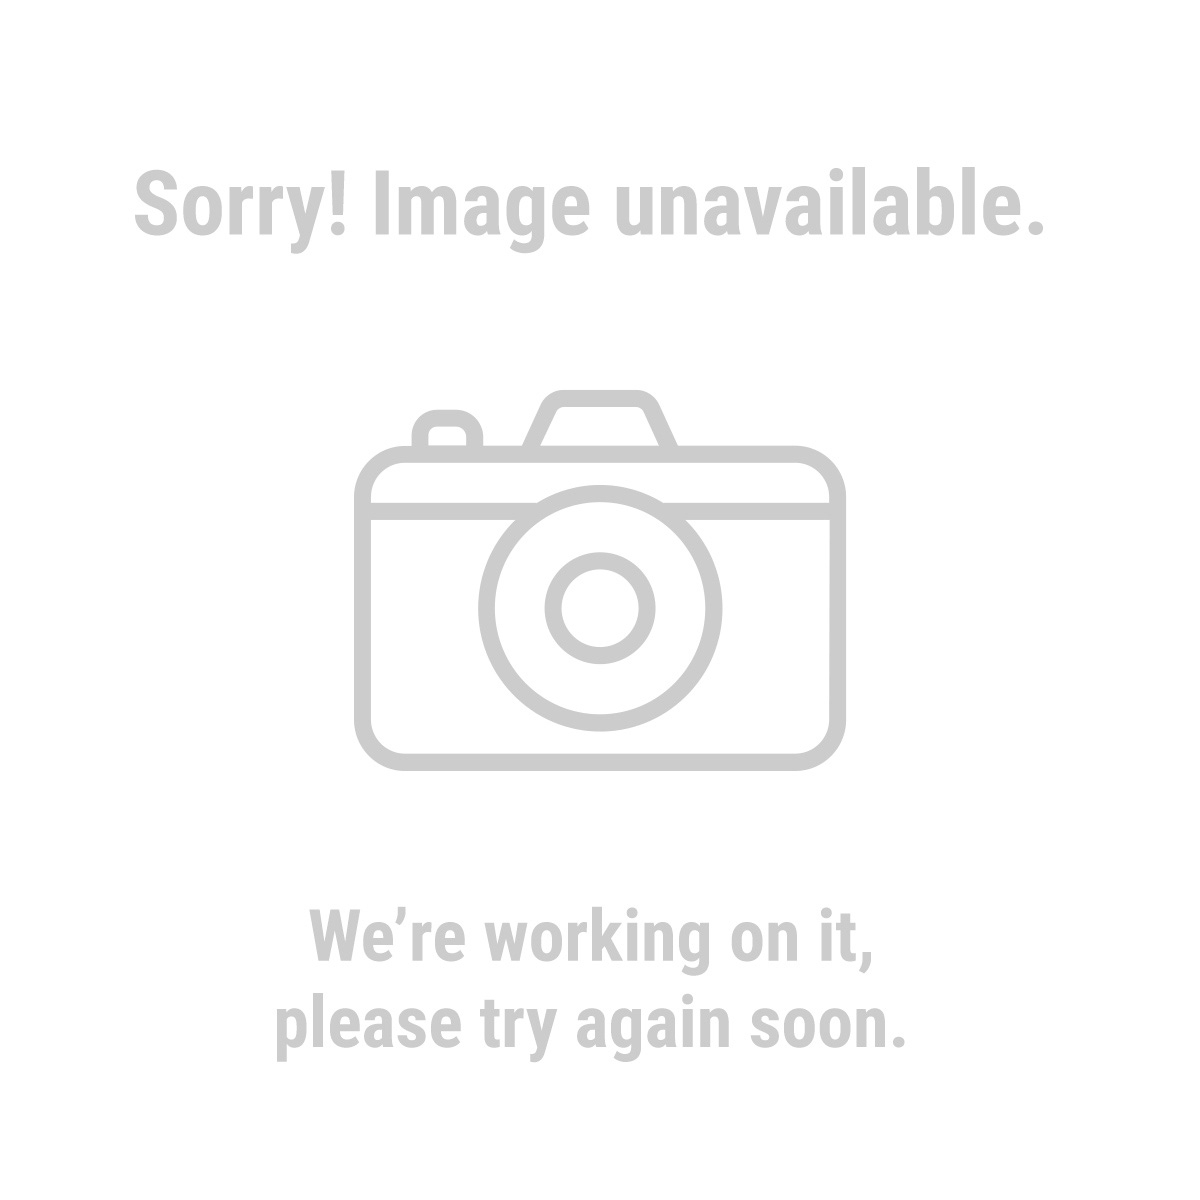 HFT® 69194 29 ft. 4 in. x 49 ft. All Purpose Weather Resistant Tarp